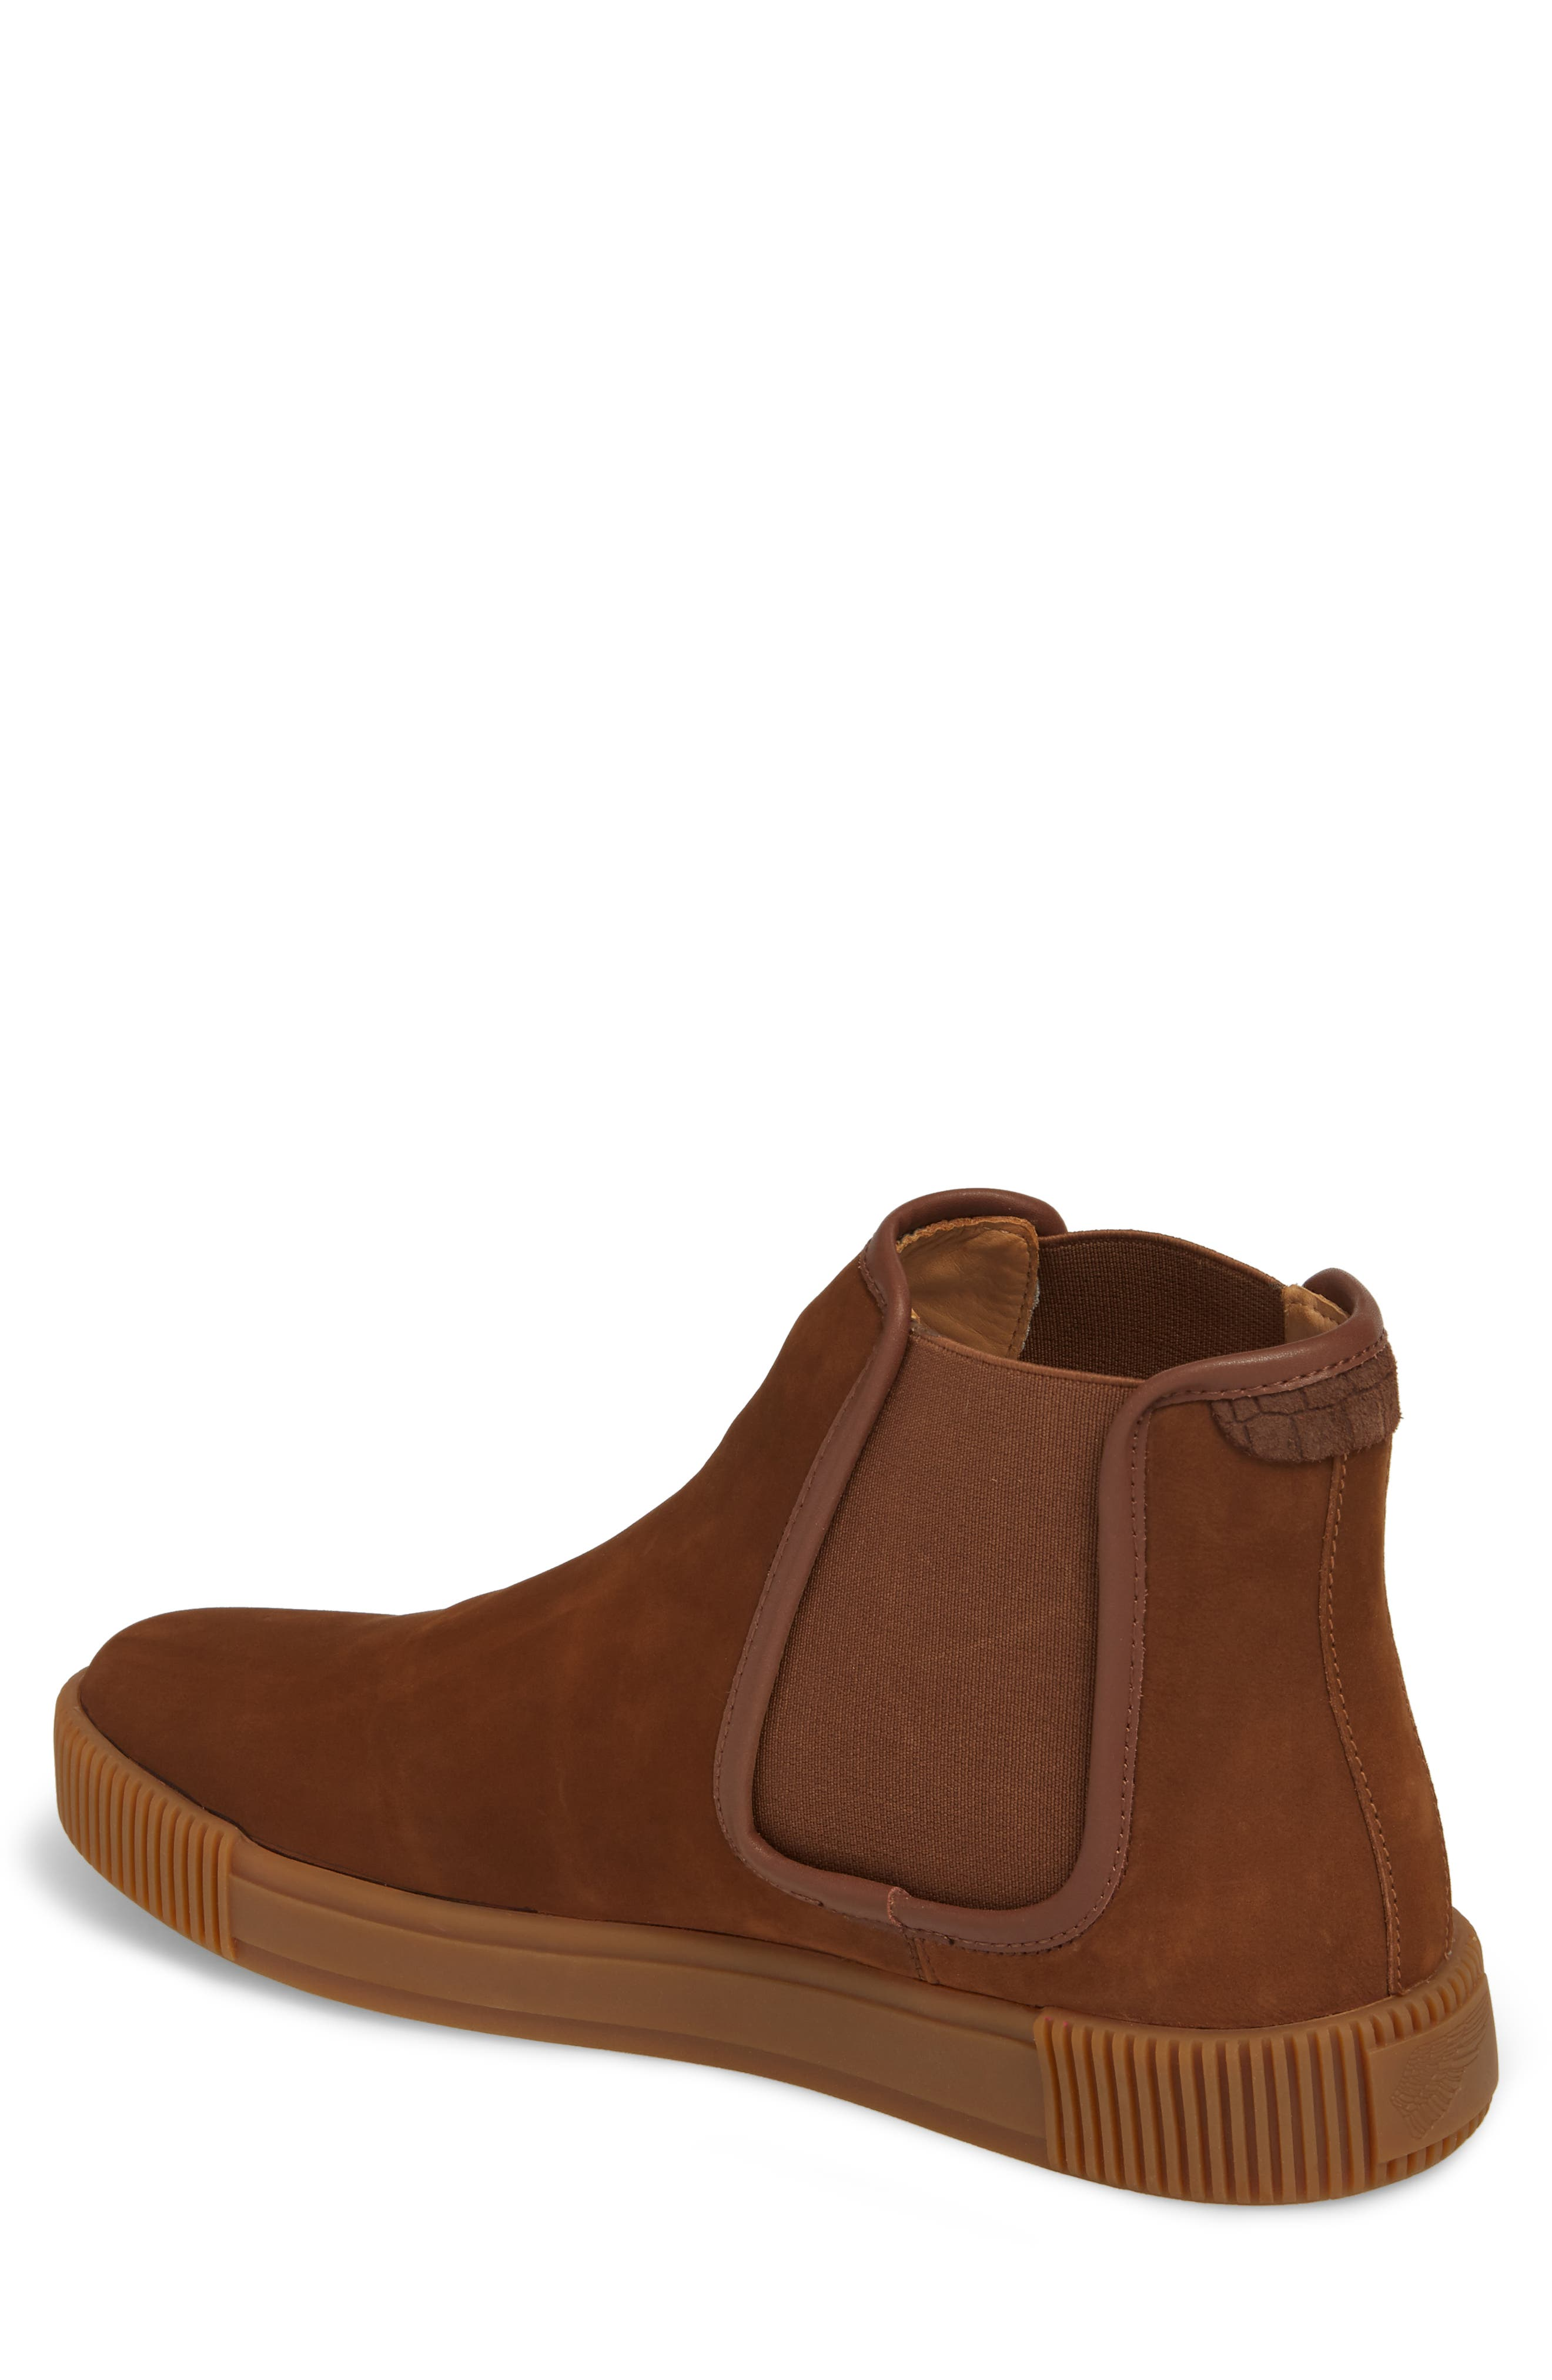 Lyons Chelsea Boot,                             Alternate thumbnail 2, color,                             CHOCOLATE SUEDE